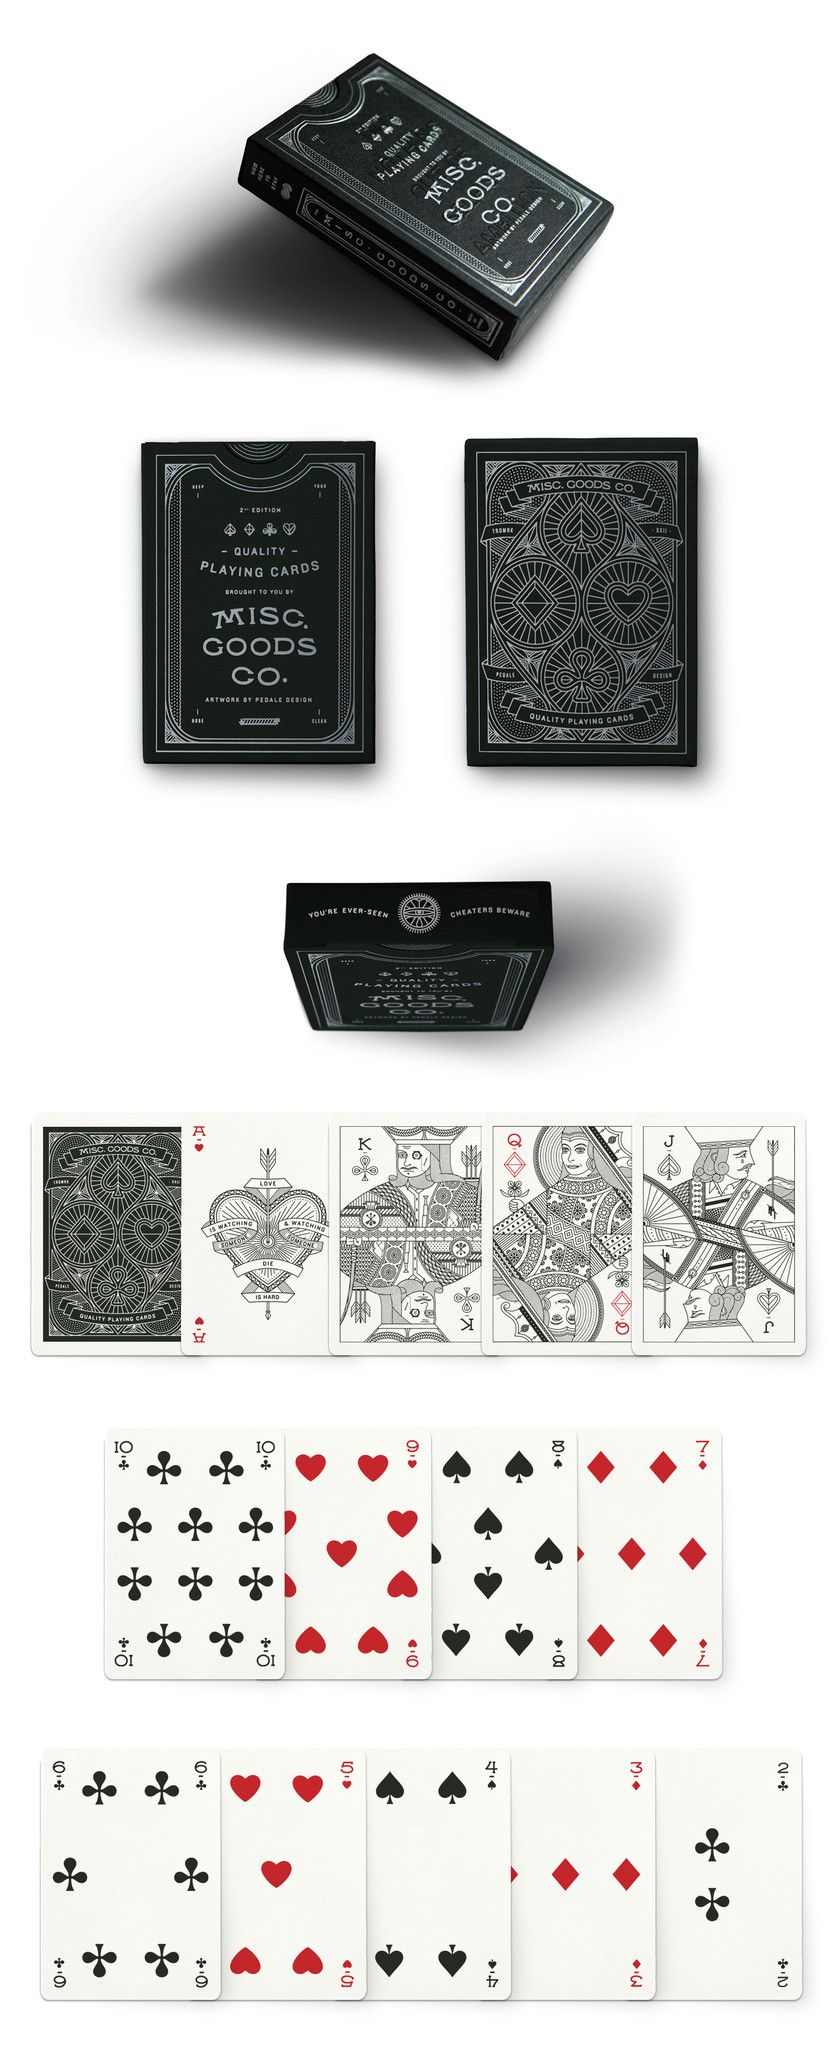 Http Misc Goods Co Myshopify Com Products 2nd Edition Deck Blk 1 Playing Cards Design Unique Playing Cards Deck Of Cards